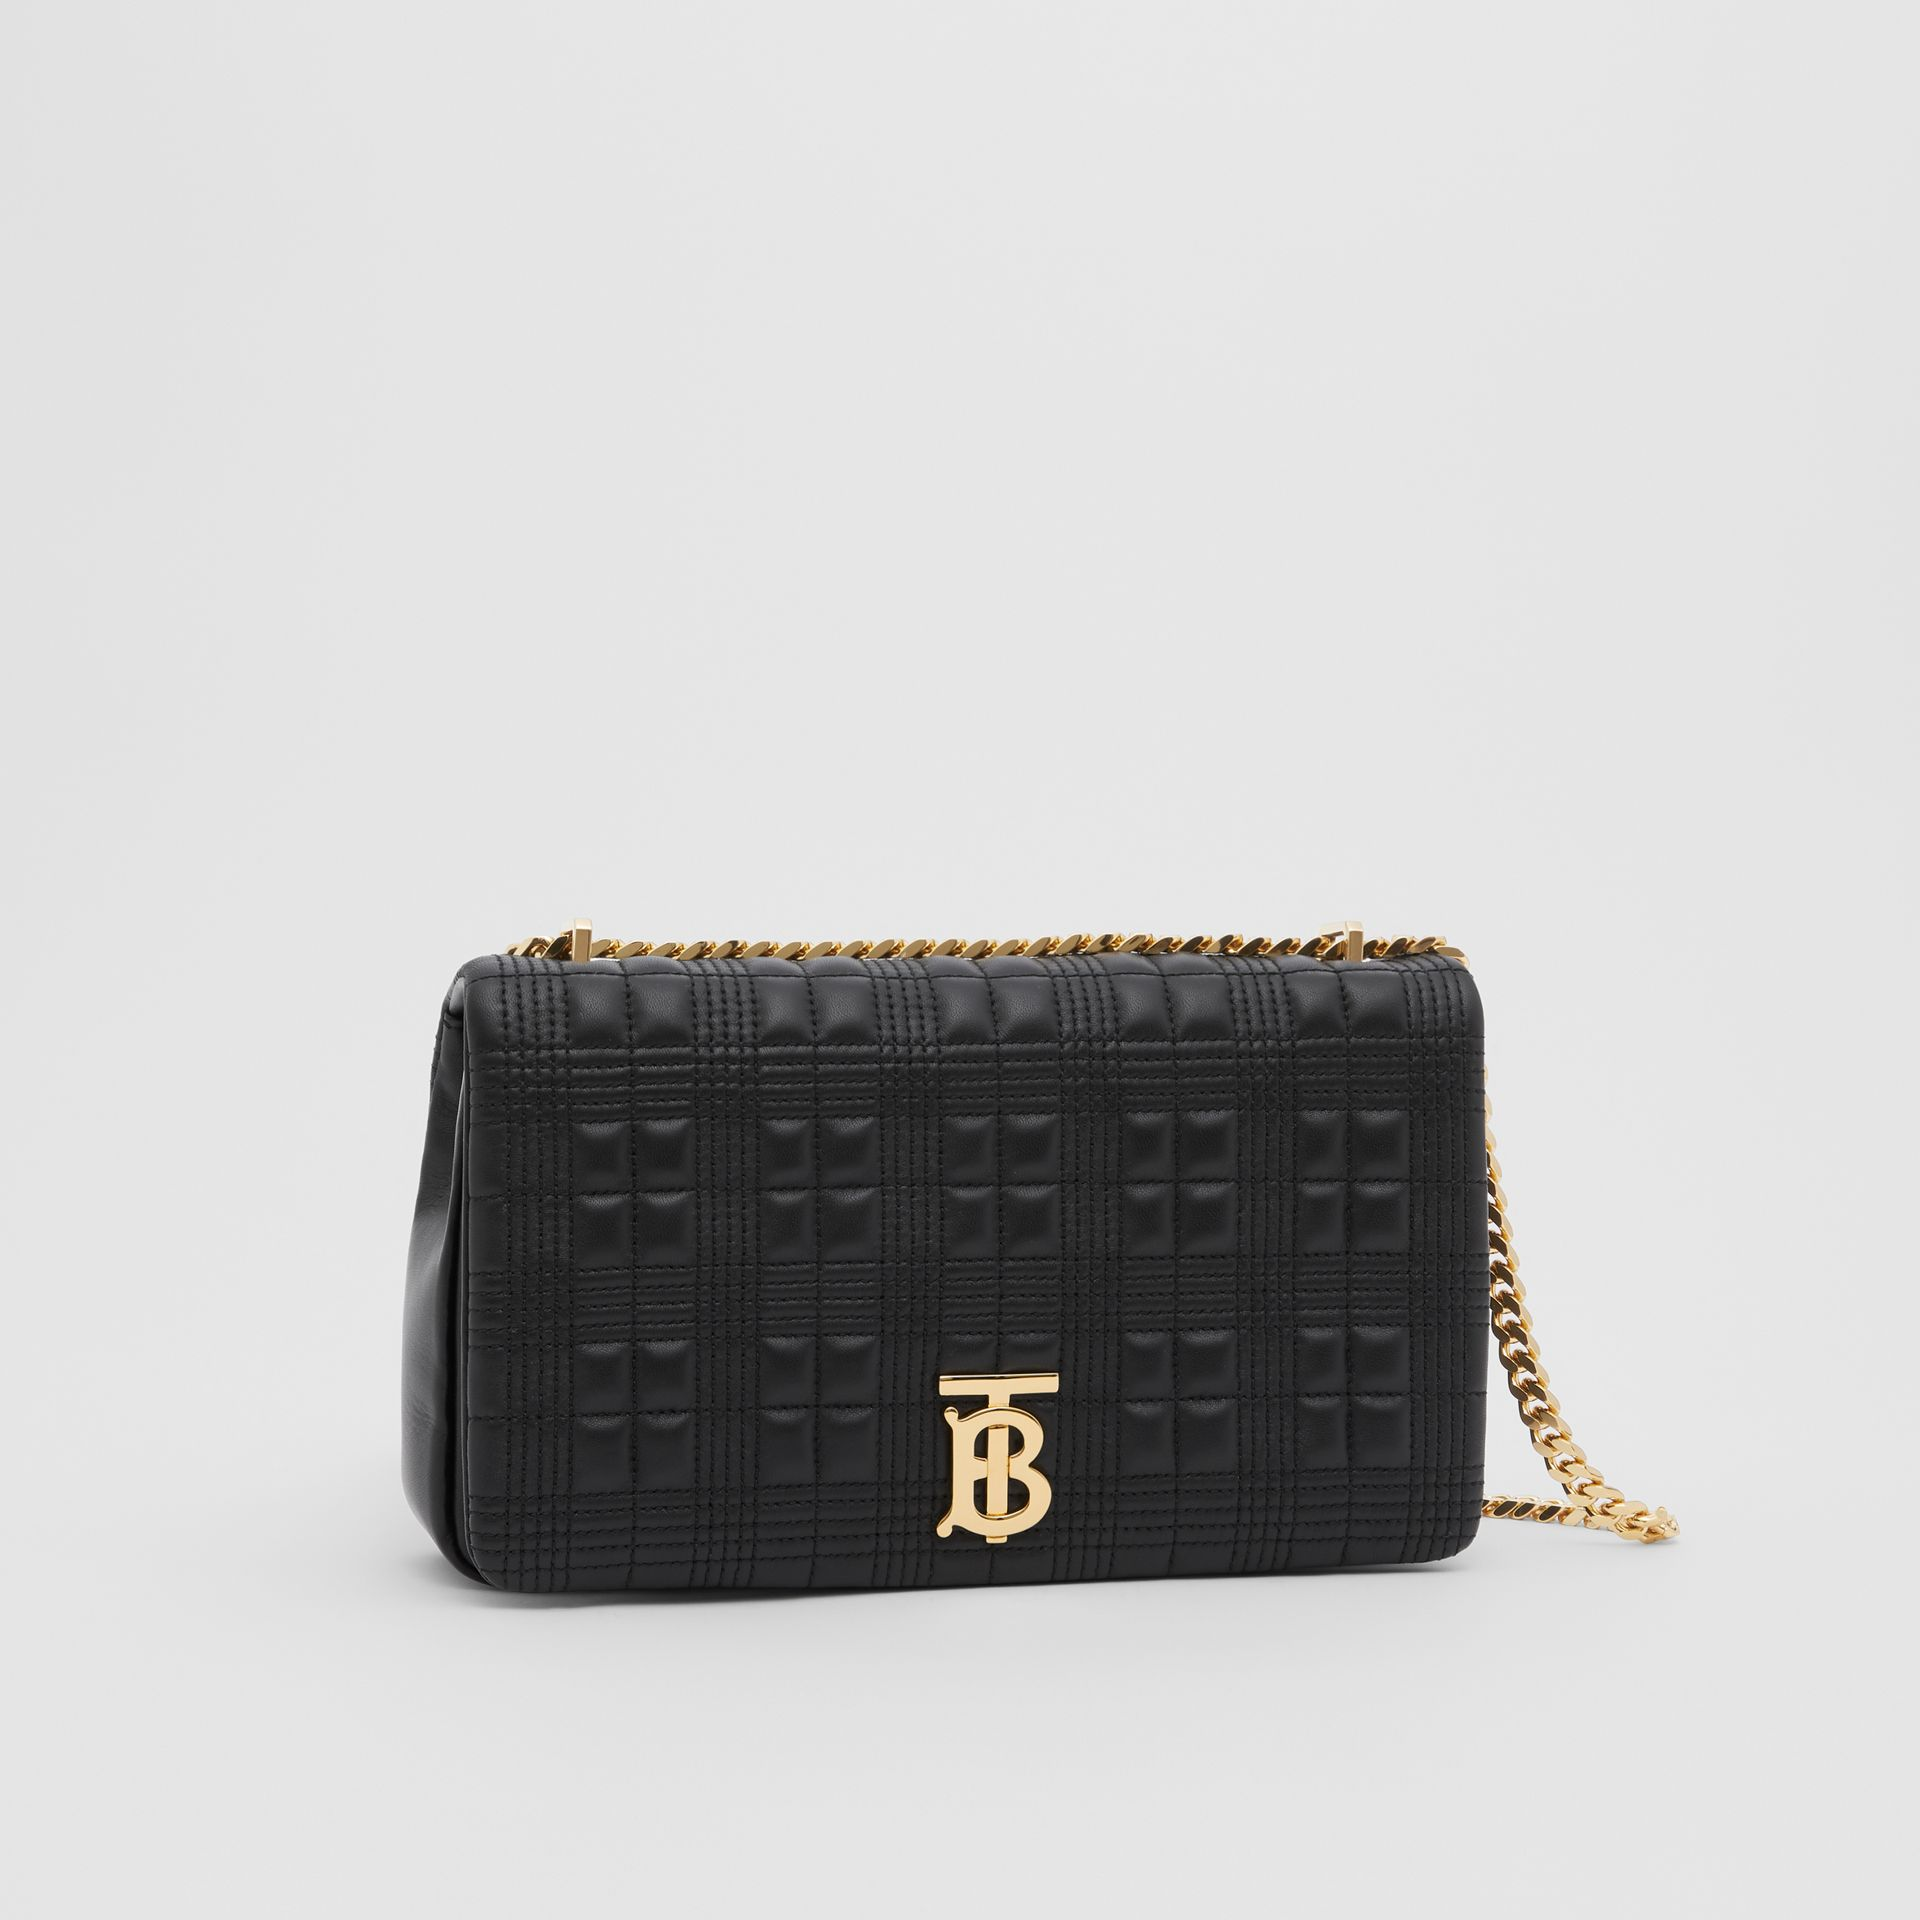 Medium Quilted Lambskin Lola Bag in Black - Women | Burberry United States - gallery image 4